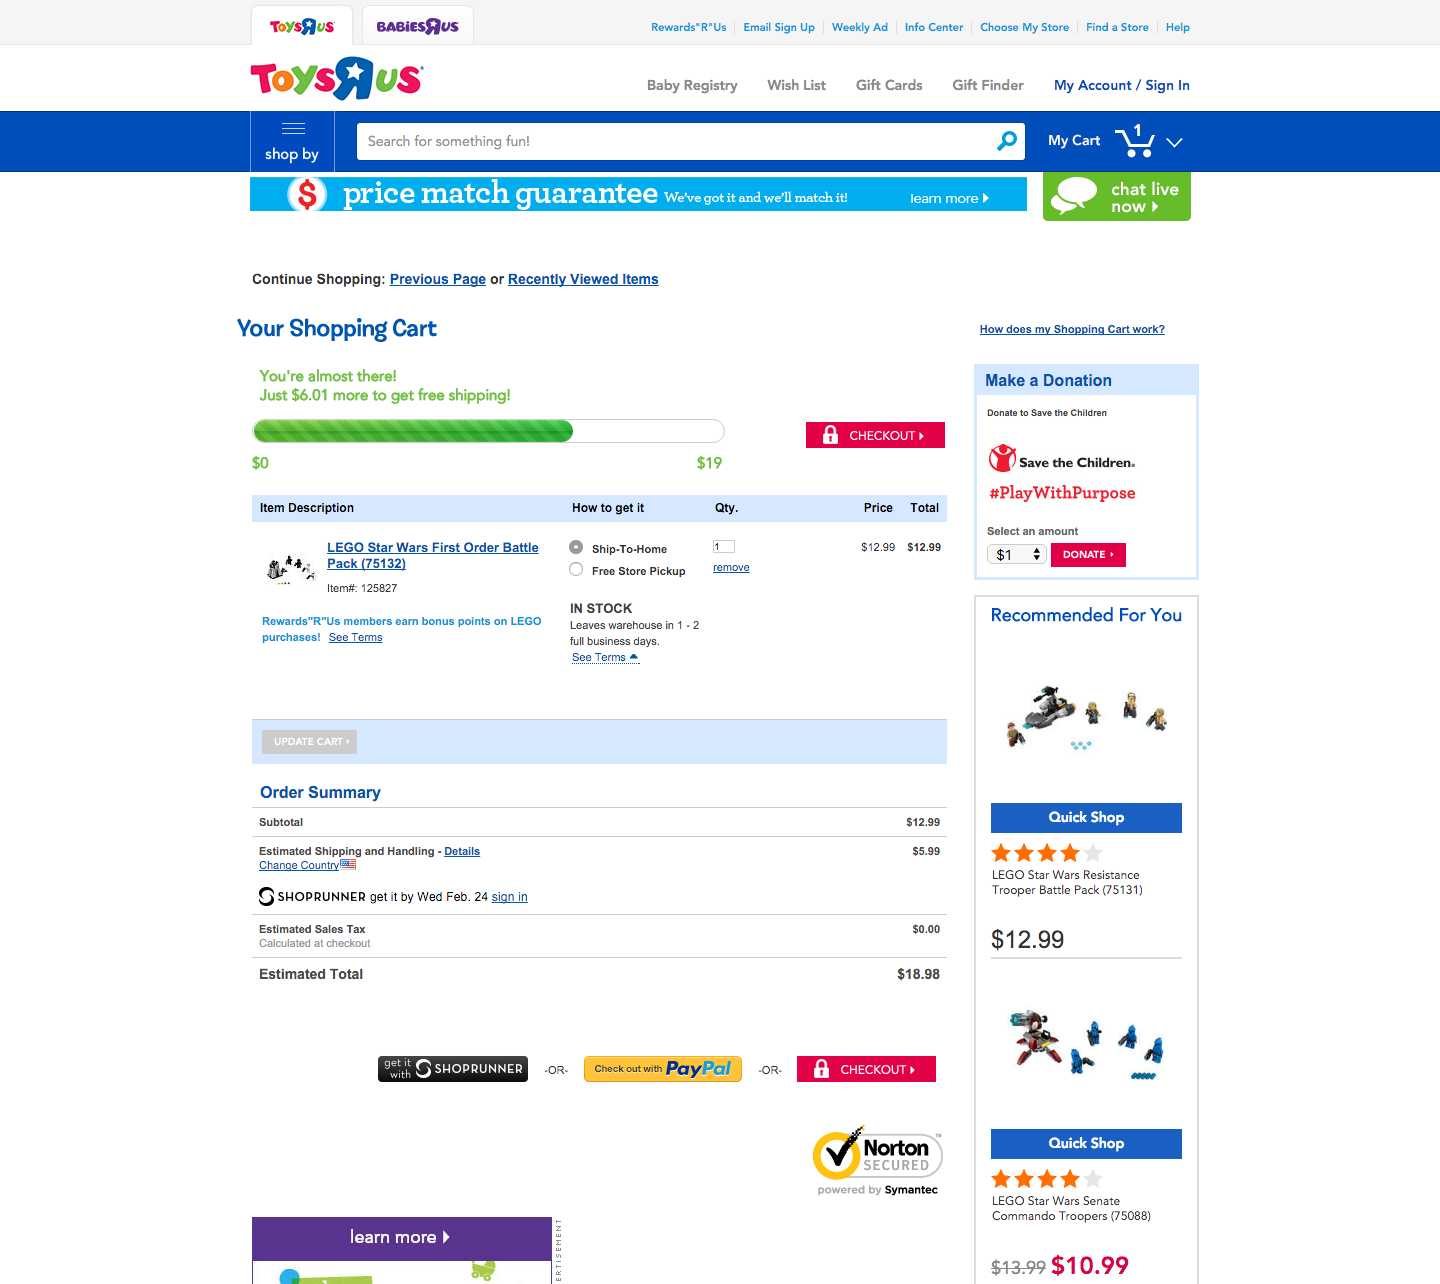 Why Toys R Us is doing a bad job at checkout